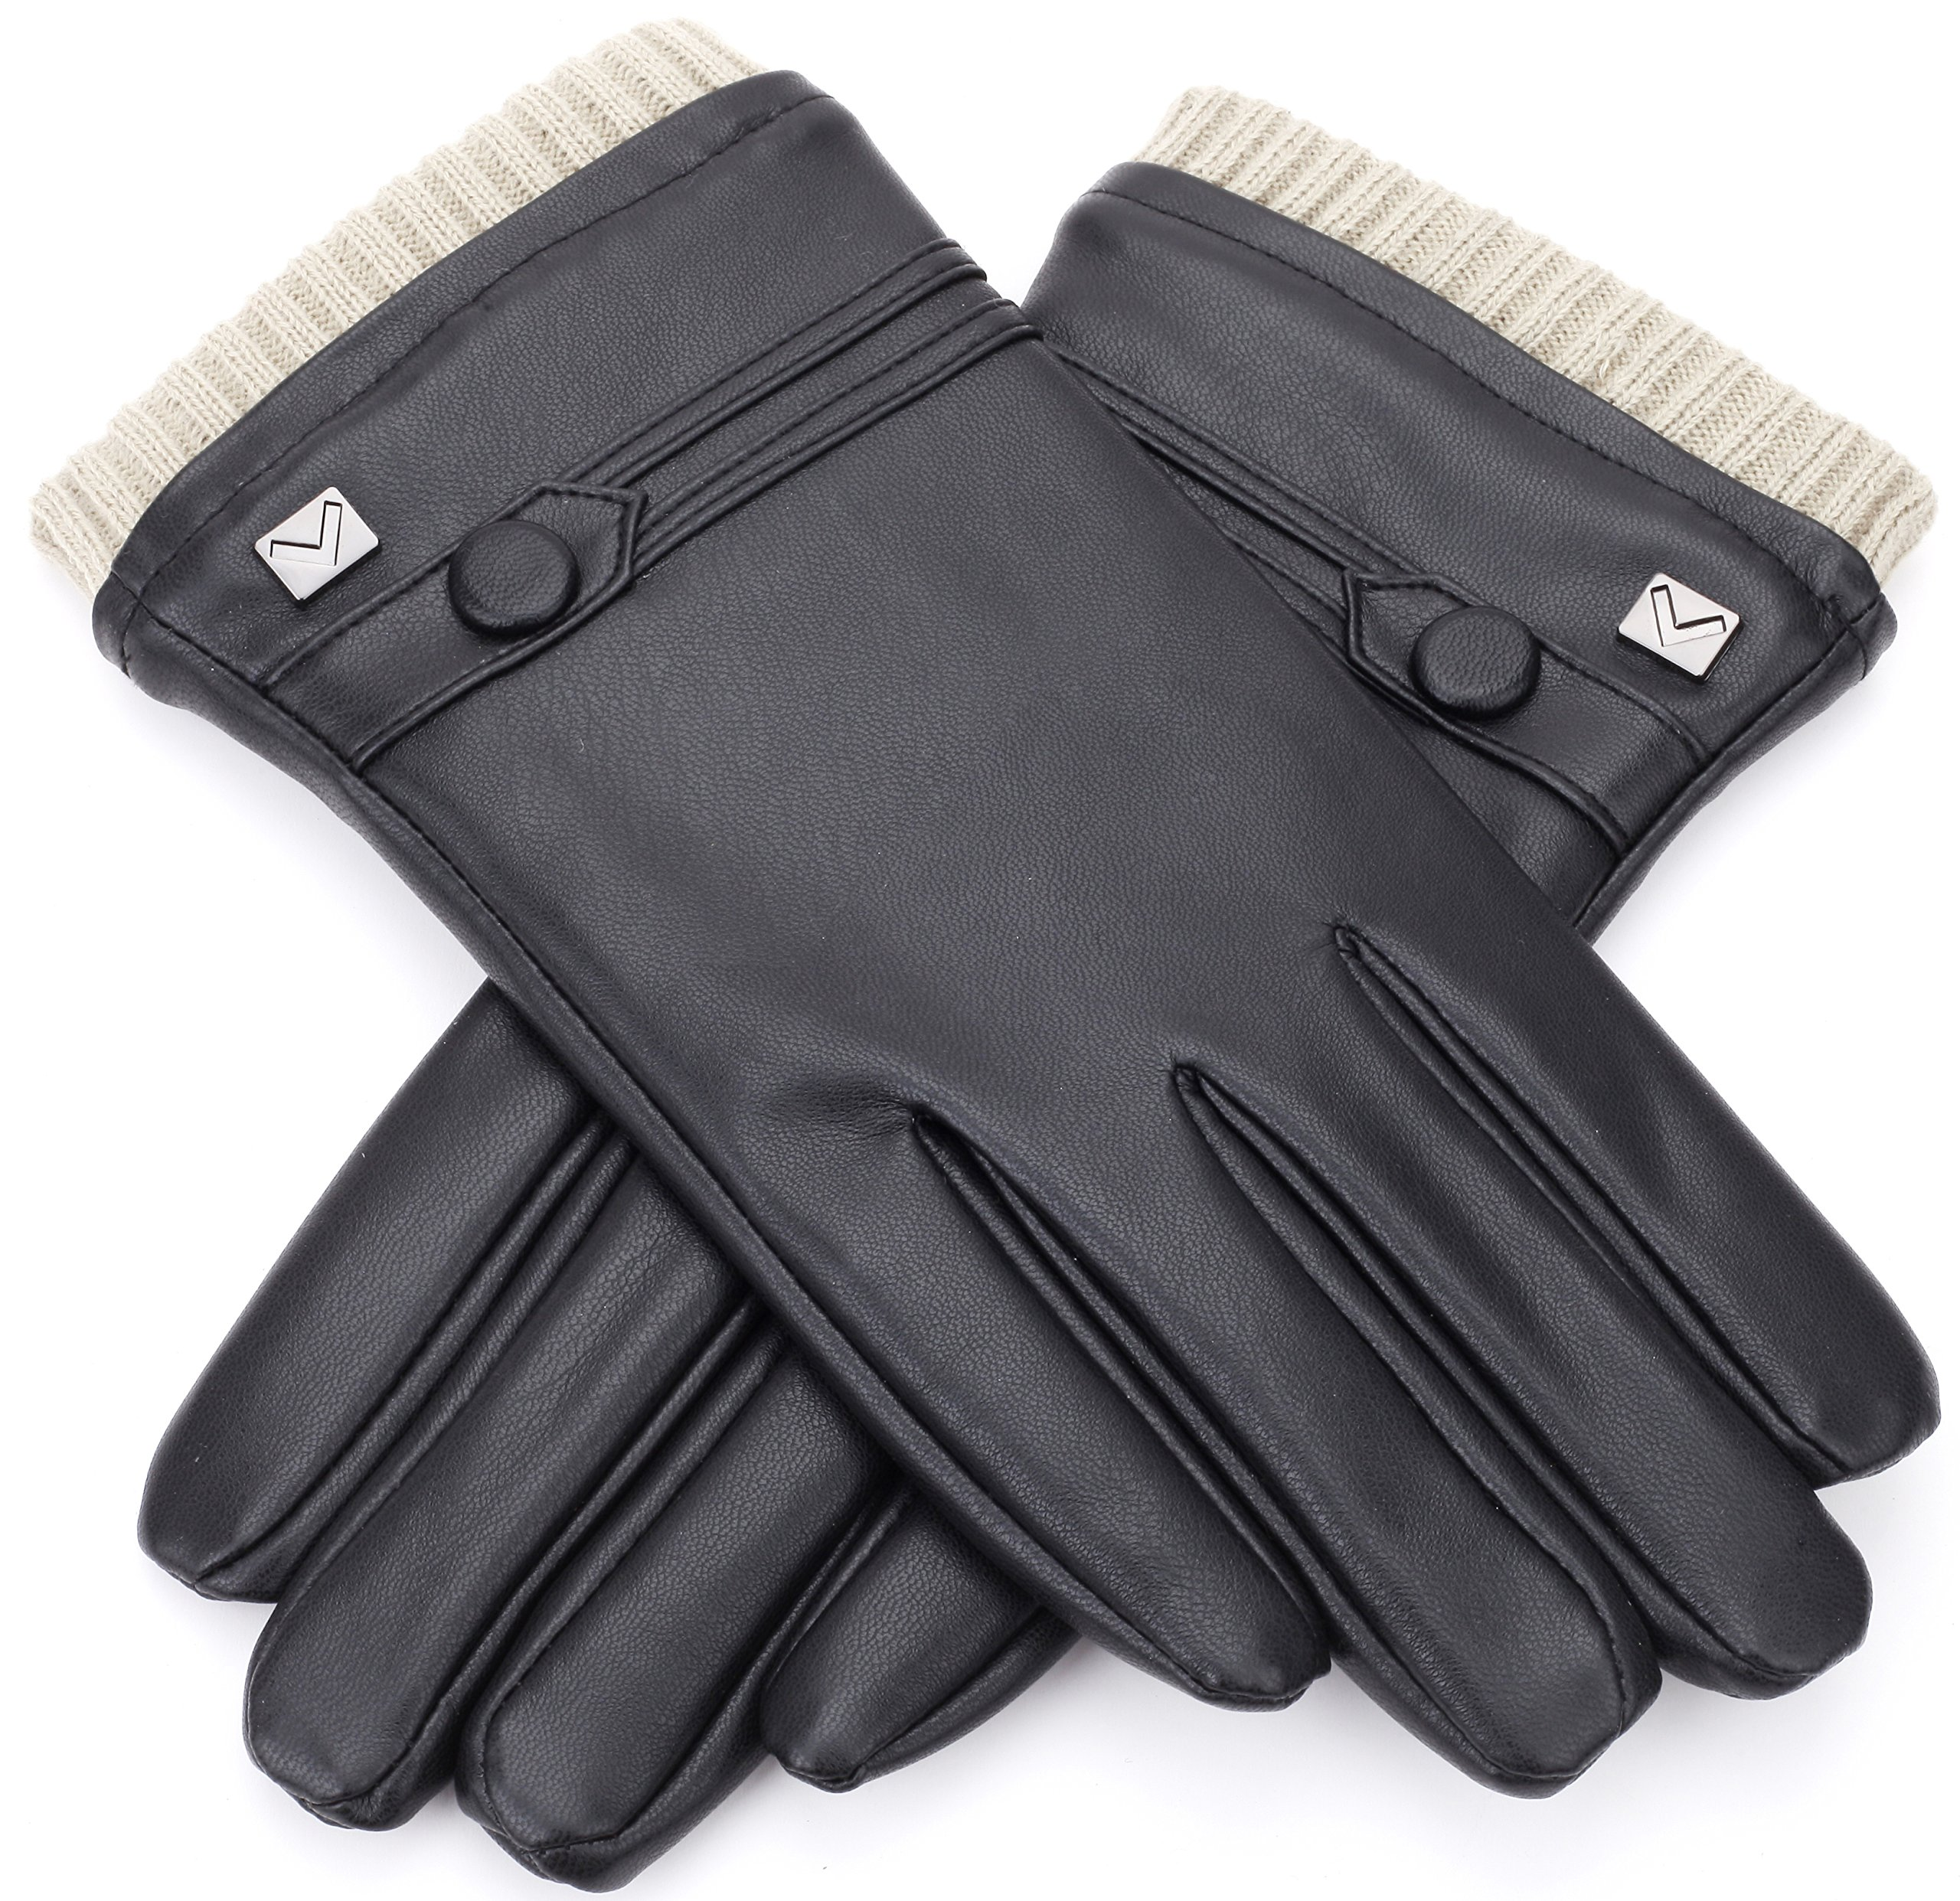 Gallery Seven Mens Faux Leather Warm Winter Gloves - Touch Screen Texting Glove - Gift Wrapped - Black Fine Button Style - Small by Gallery Seven (Image #3)